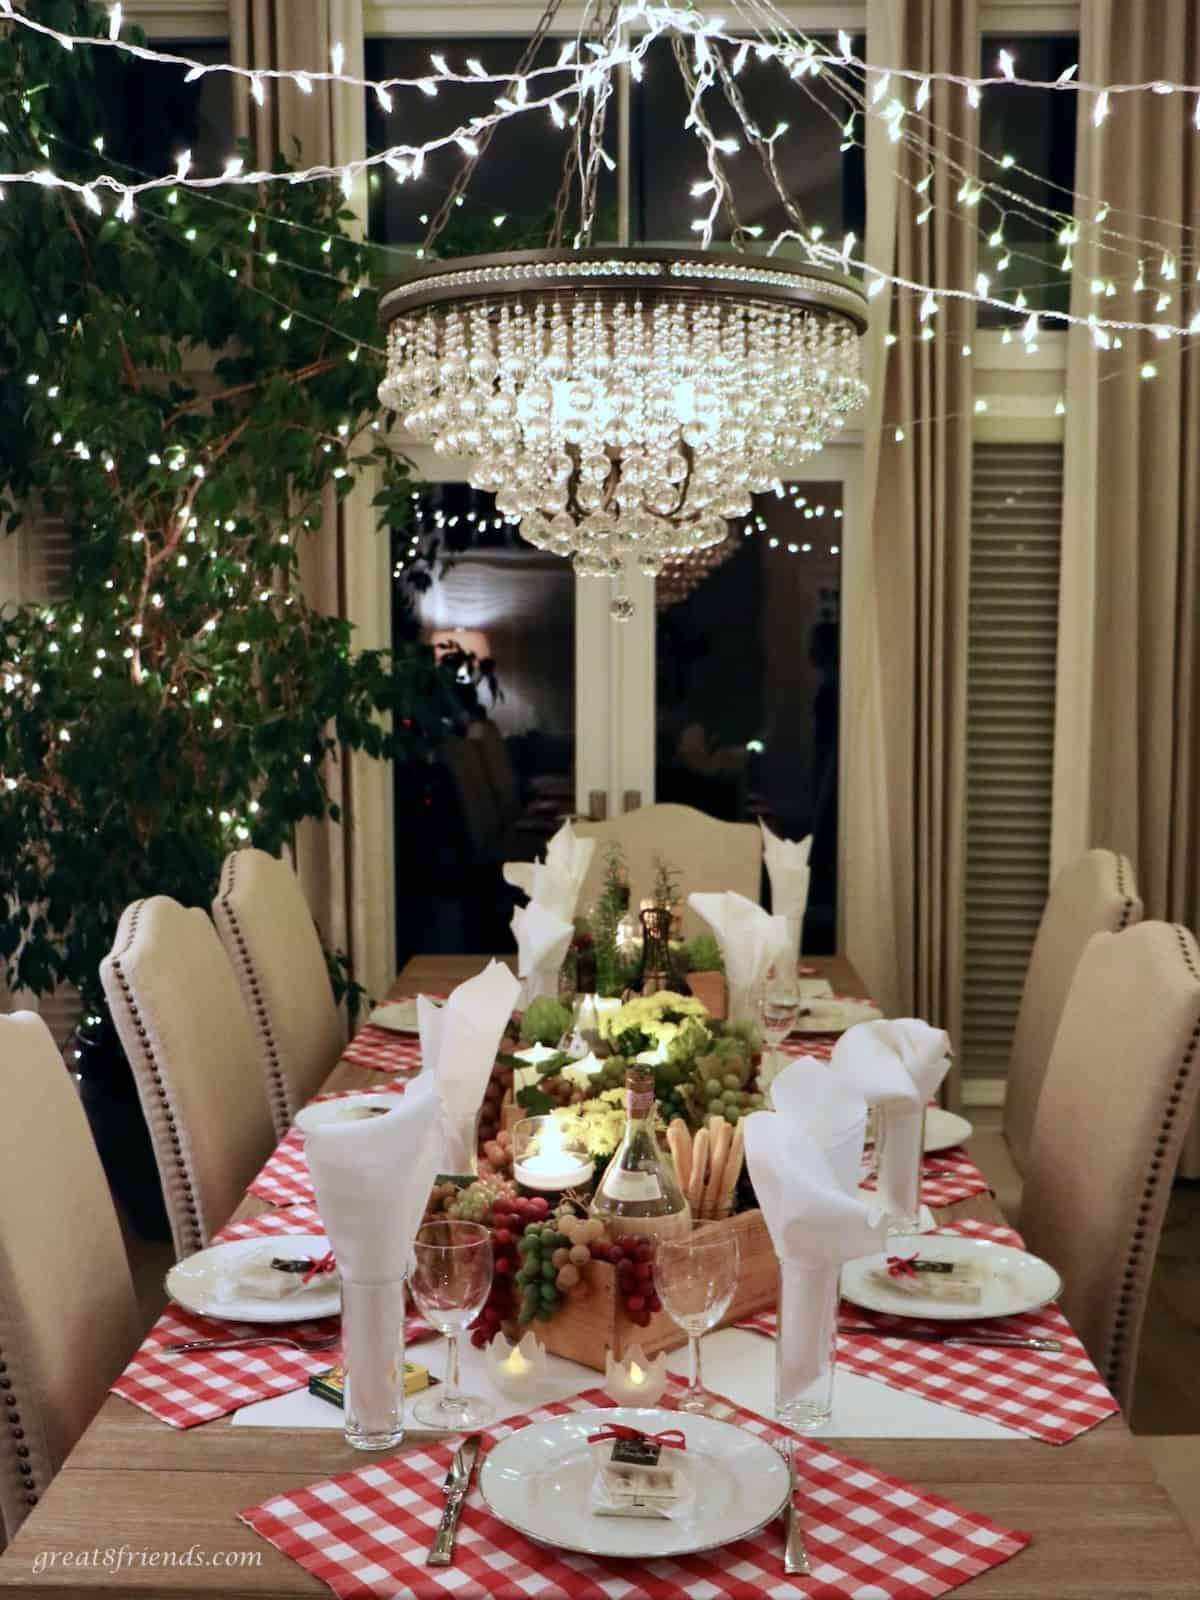 Table set for an Italian dinner with a chandelier over the table.